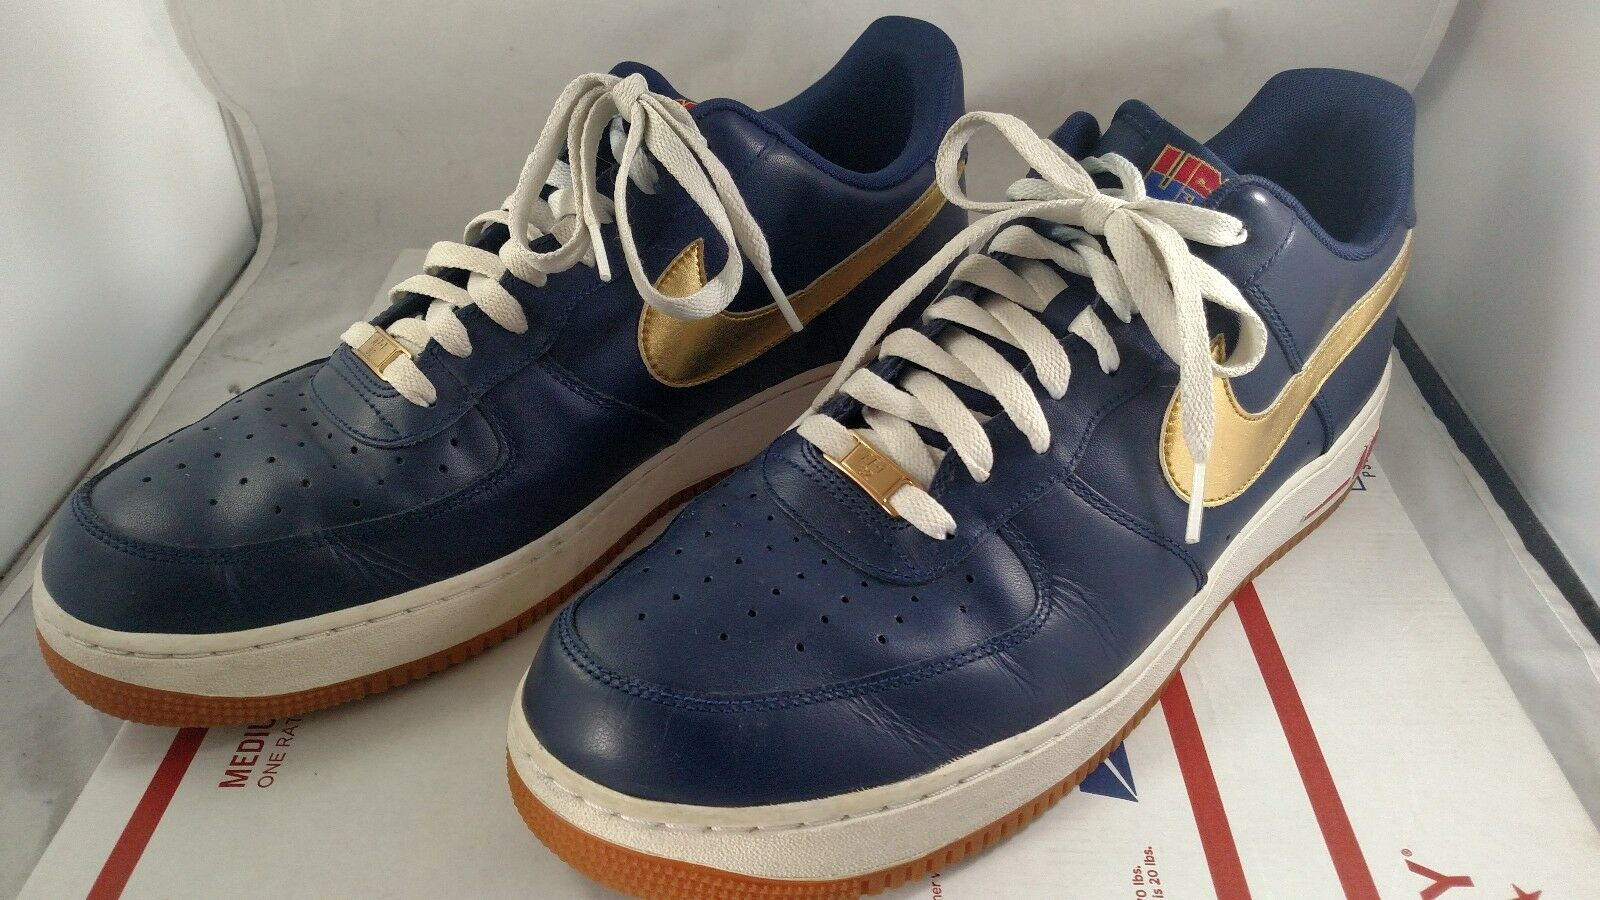 Nike Air Force 1 Low USA Olympic Shoes Size 14 Sneakers Swoosh 1982 Rare 2012